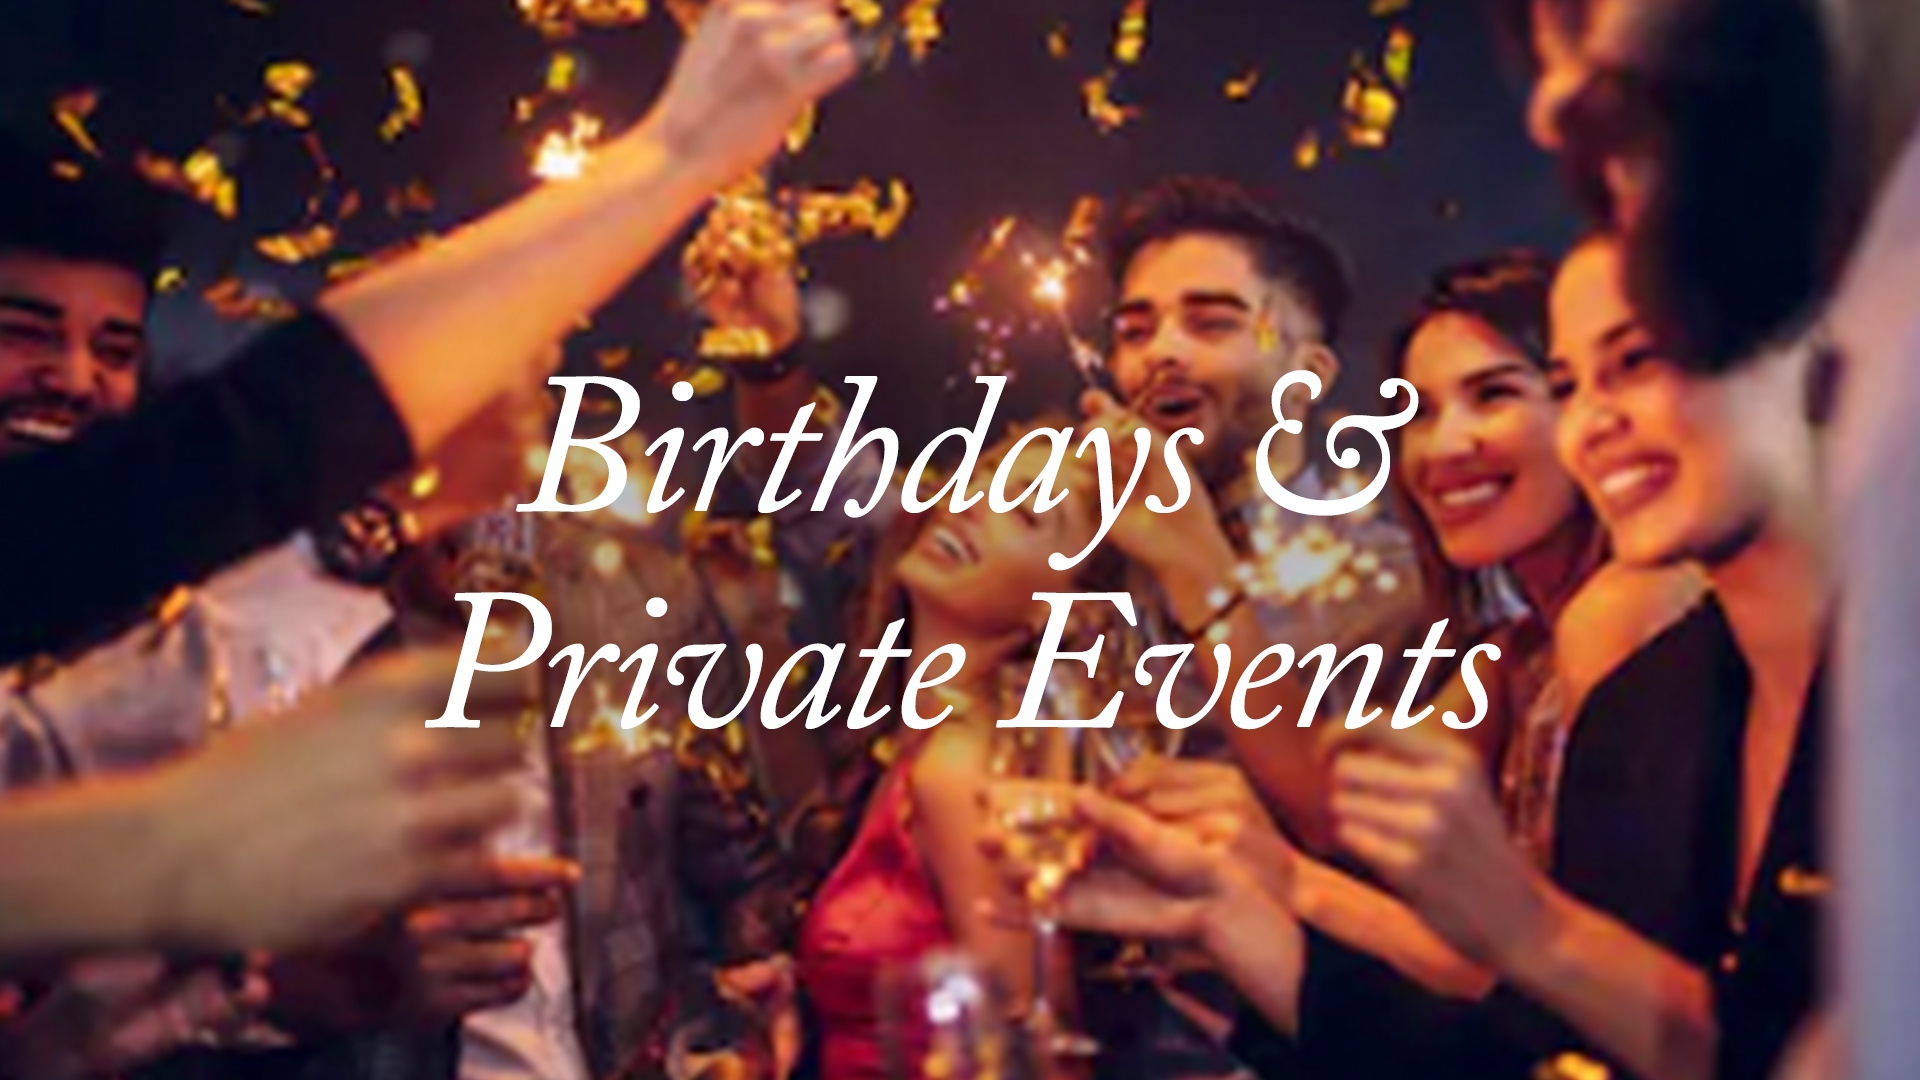 Birthdays-&-Private-Events.jpg